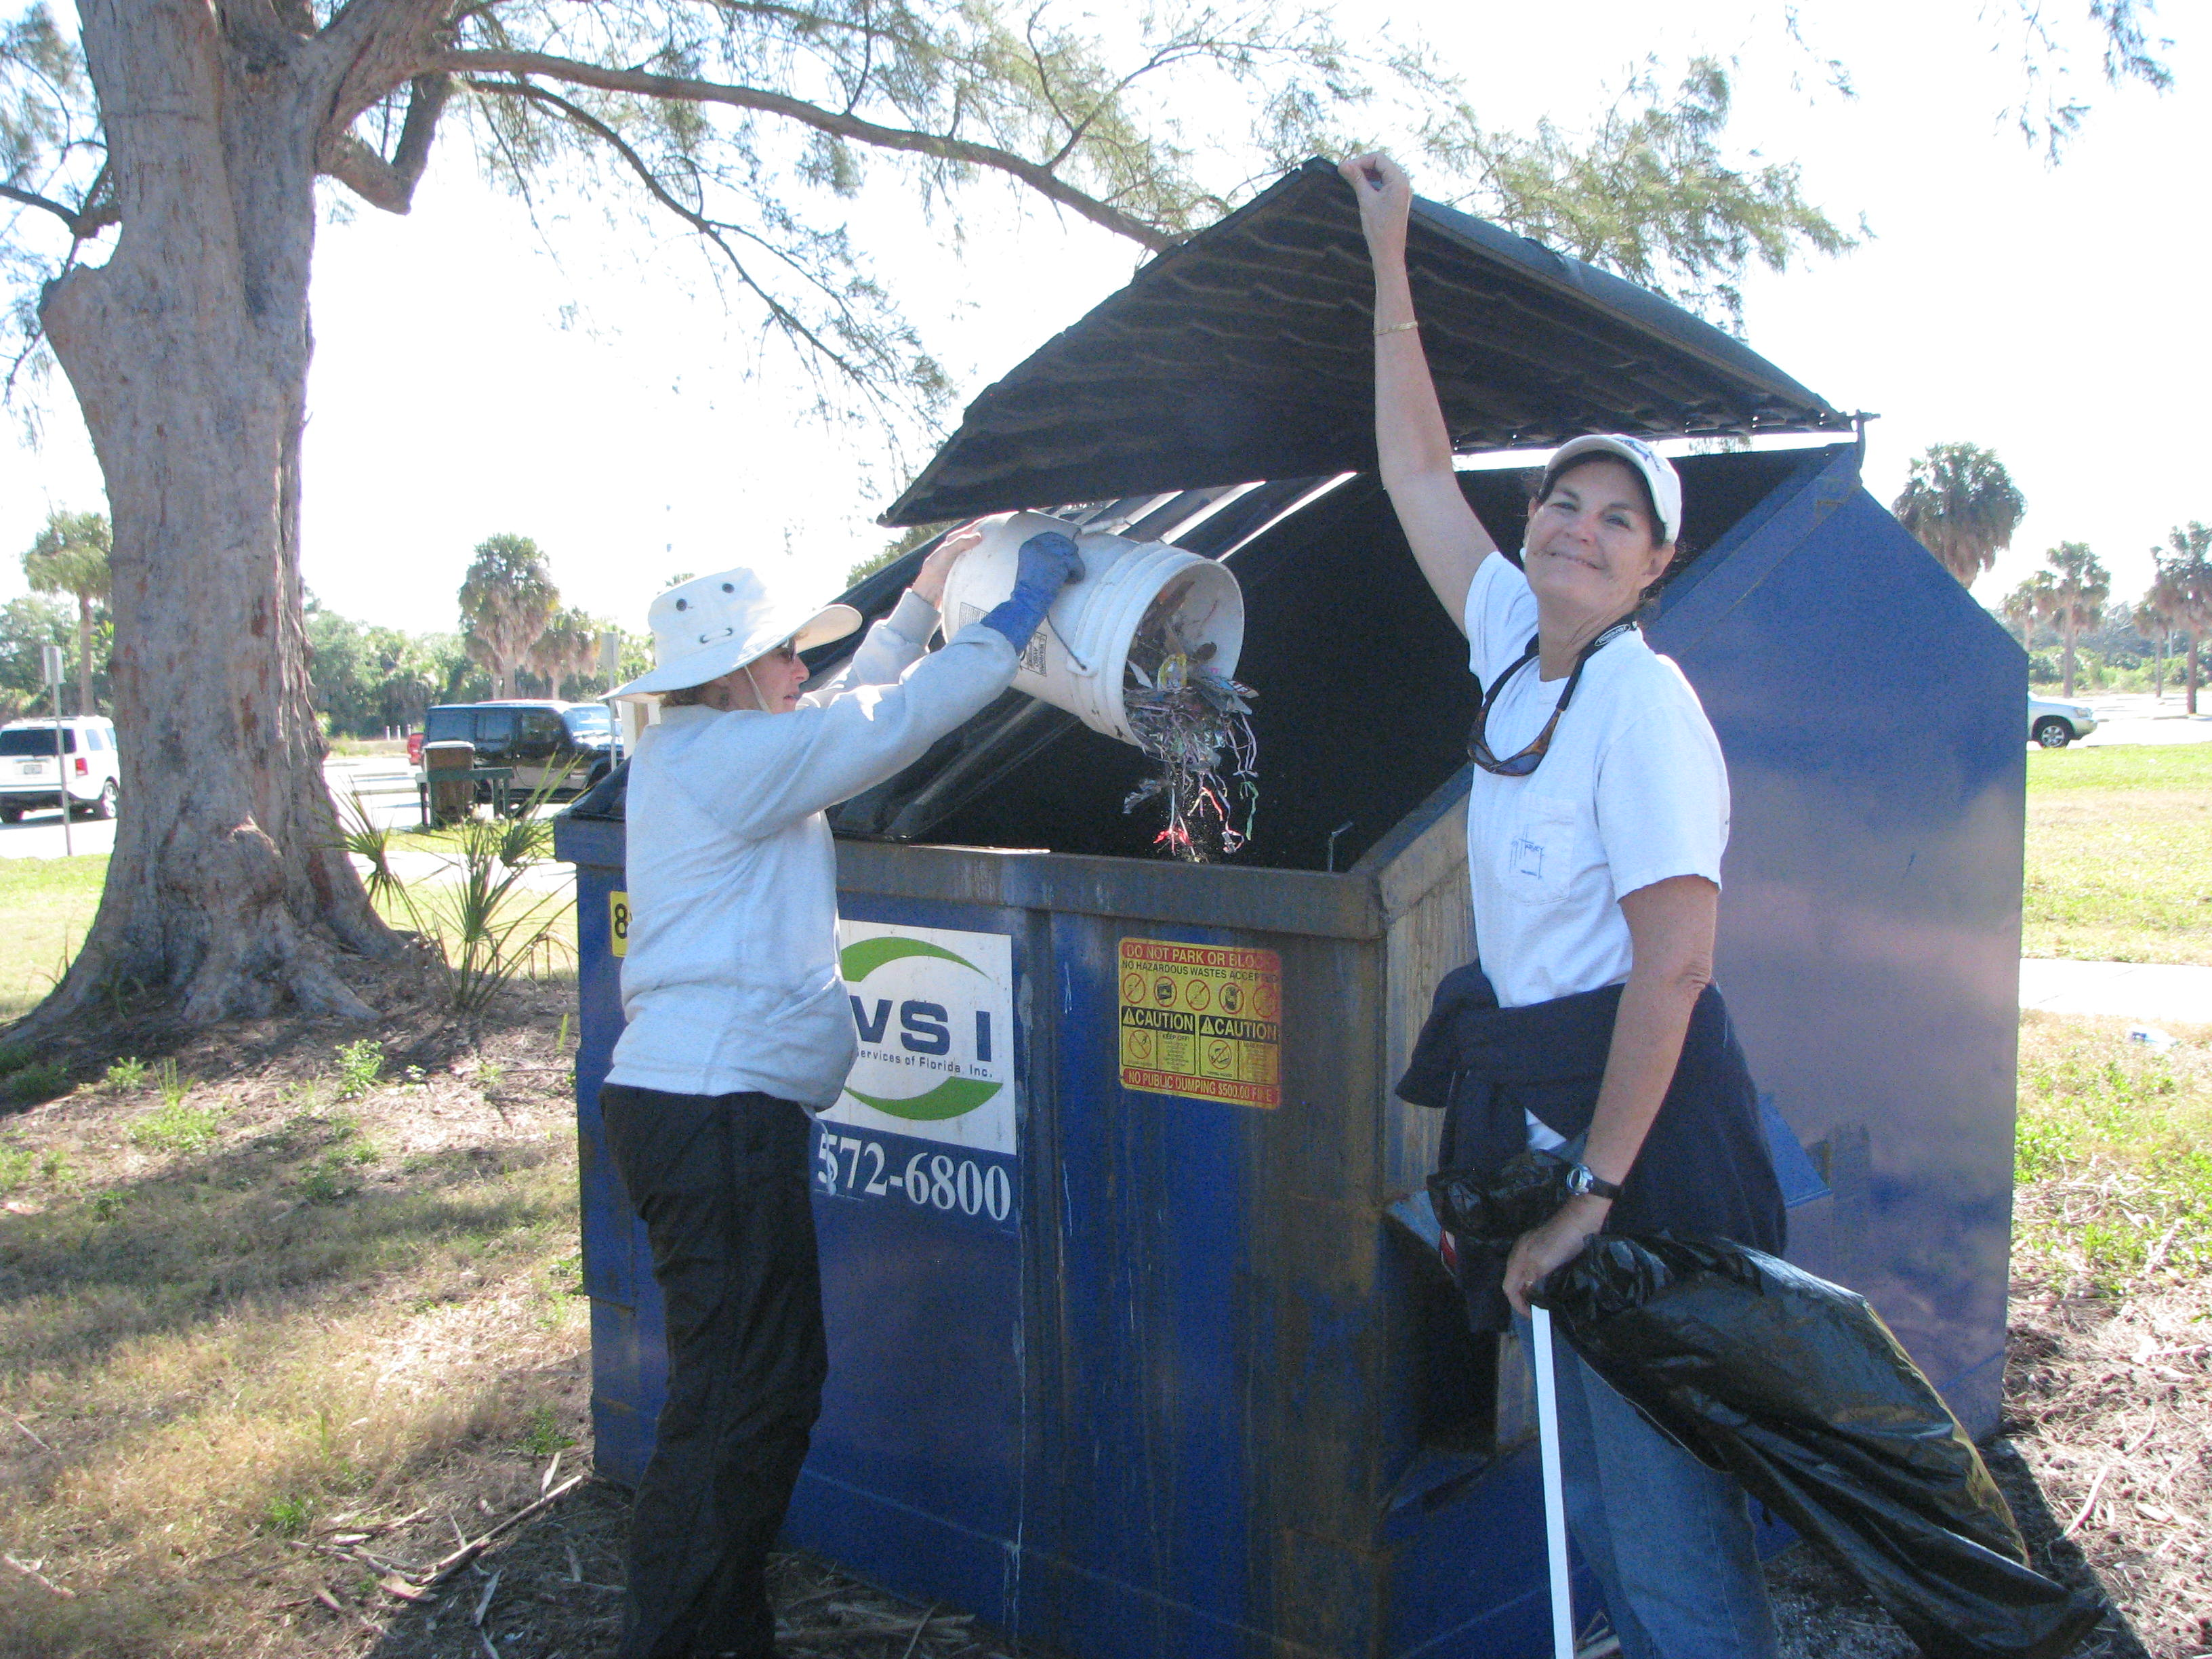 Emptying a bucket of trash into the dumpster